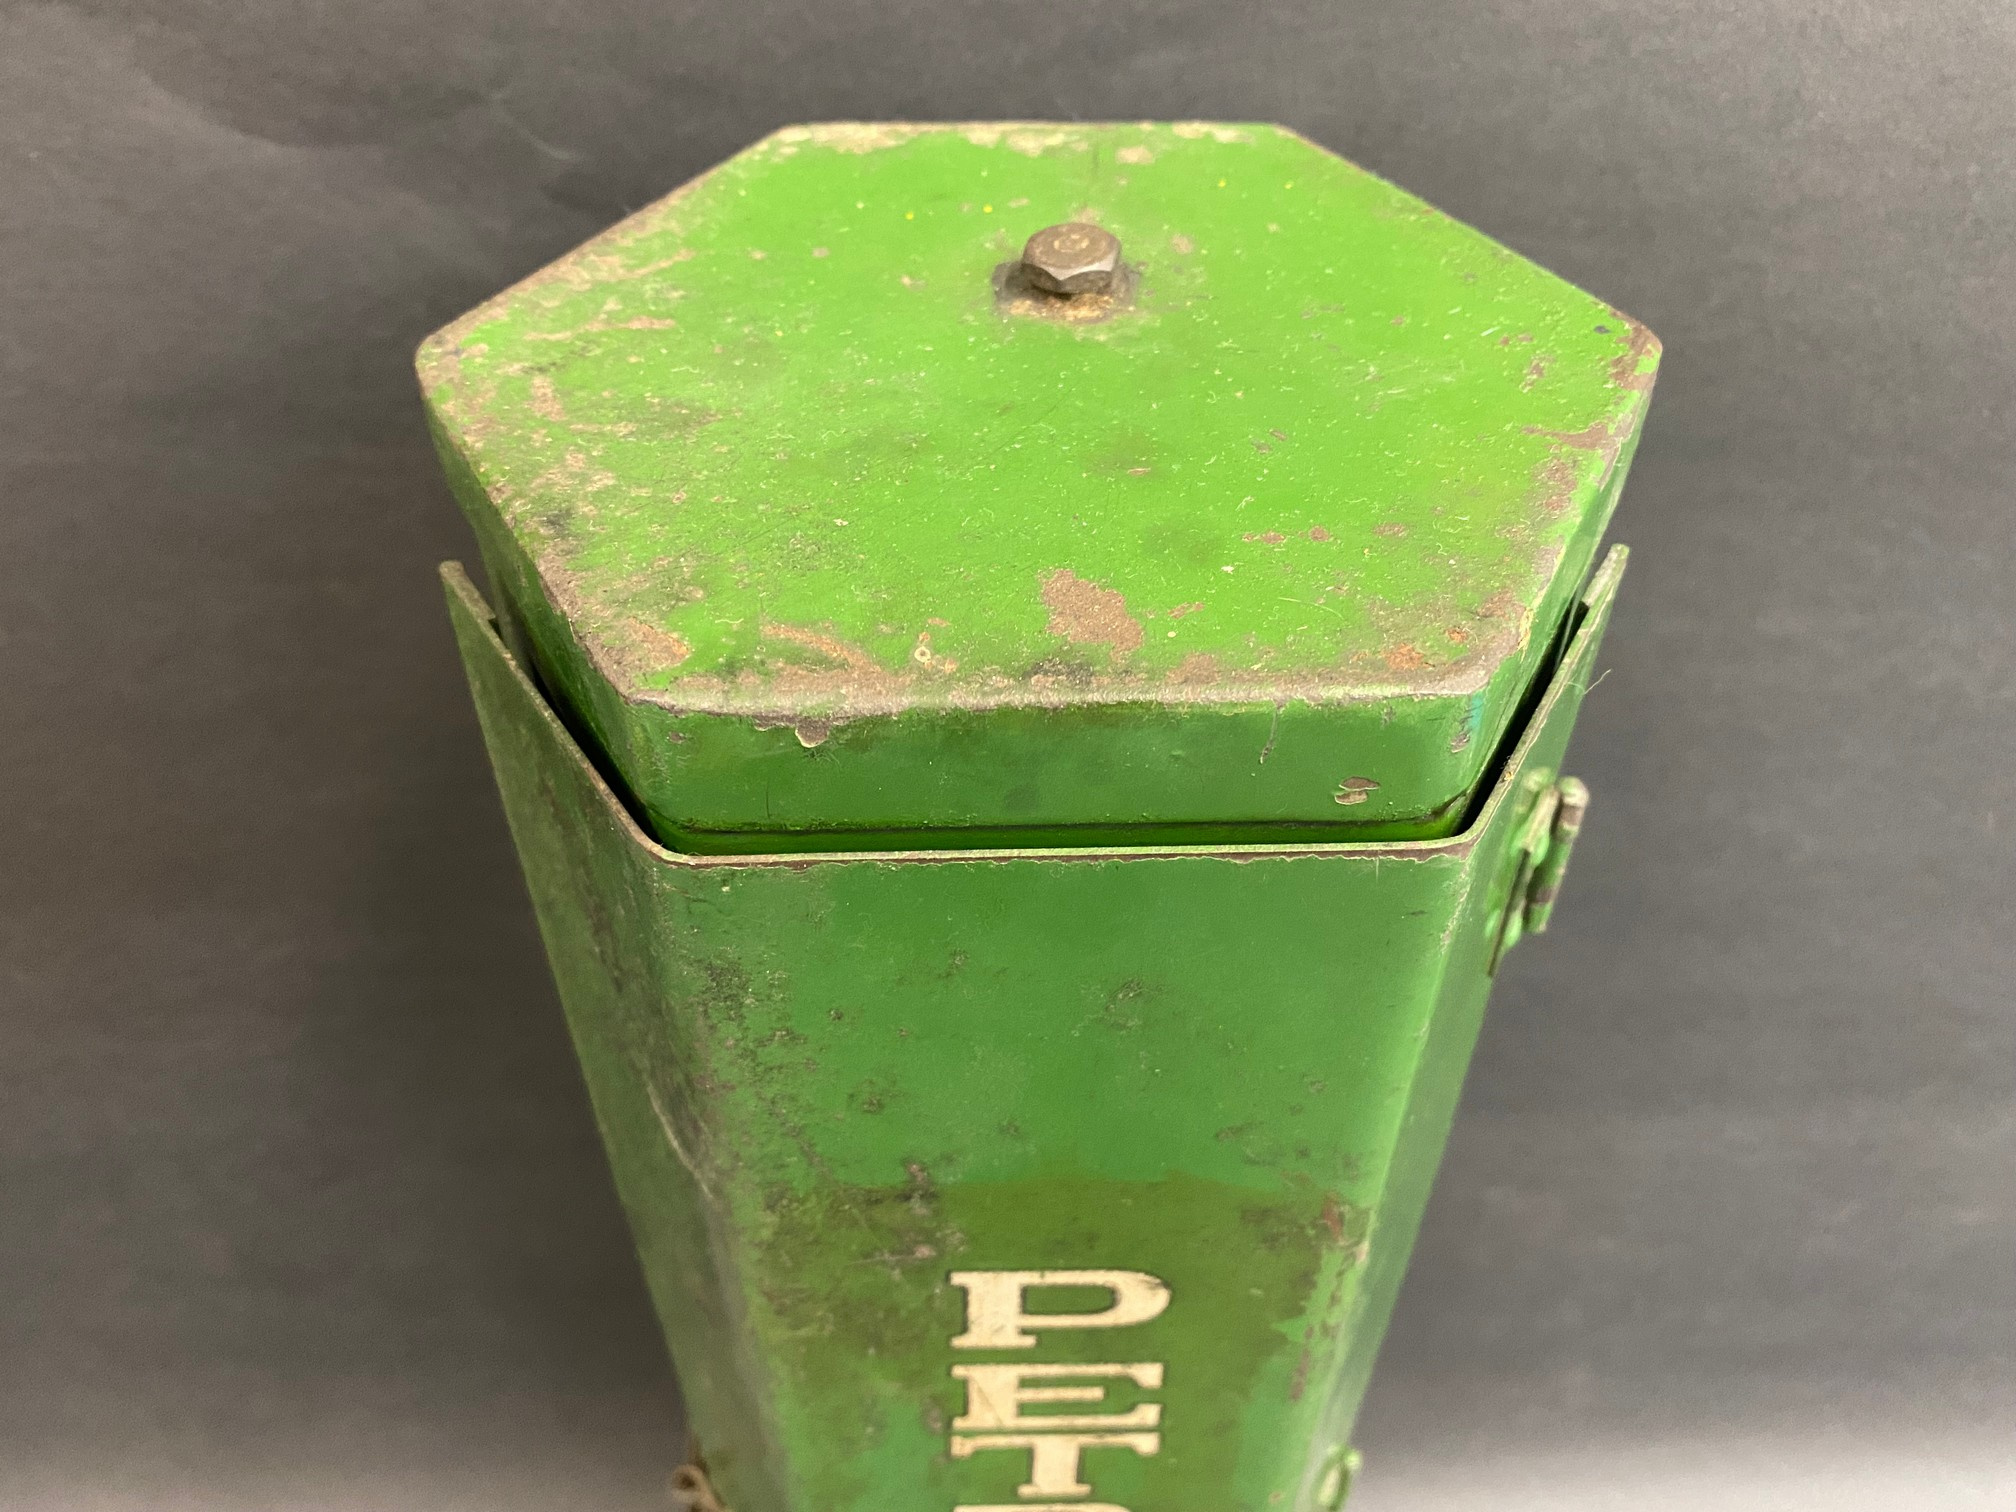 A very unusual Fitrate 'Petroyle' hexagonal wall mounted UCL cabinet with a gun inside. - Image 4 of 6